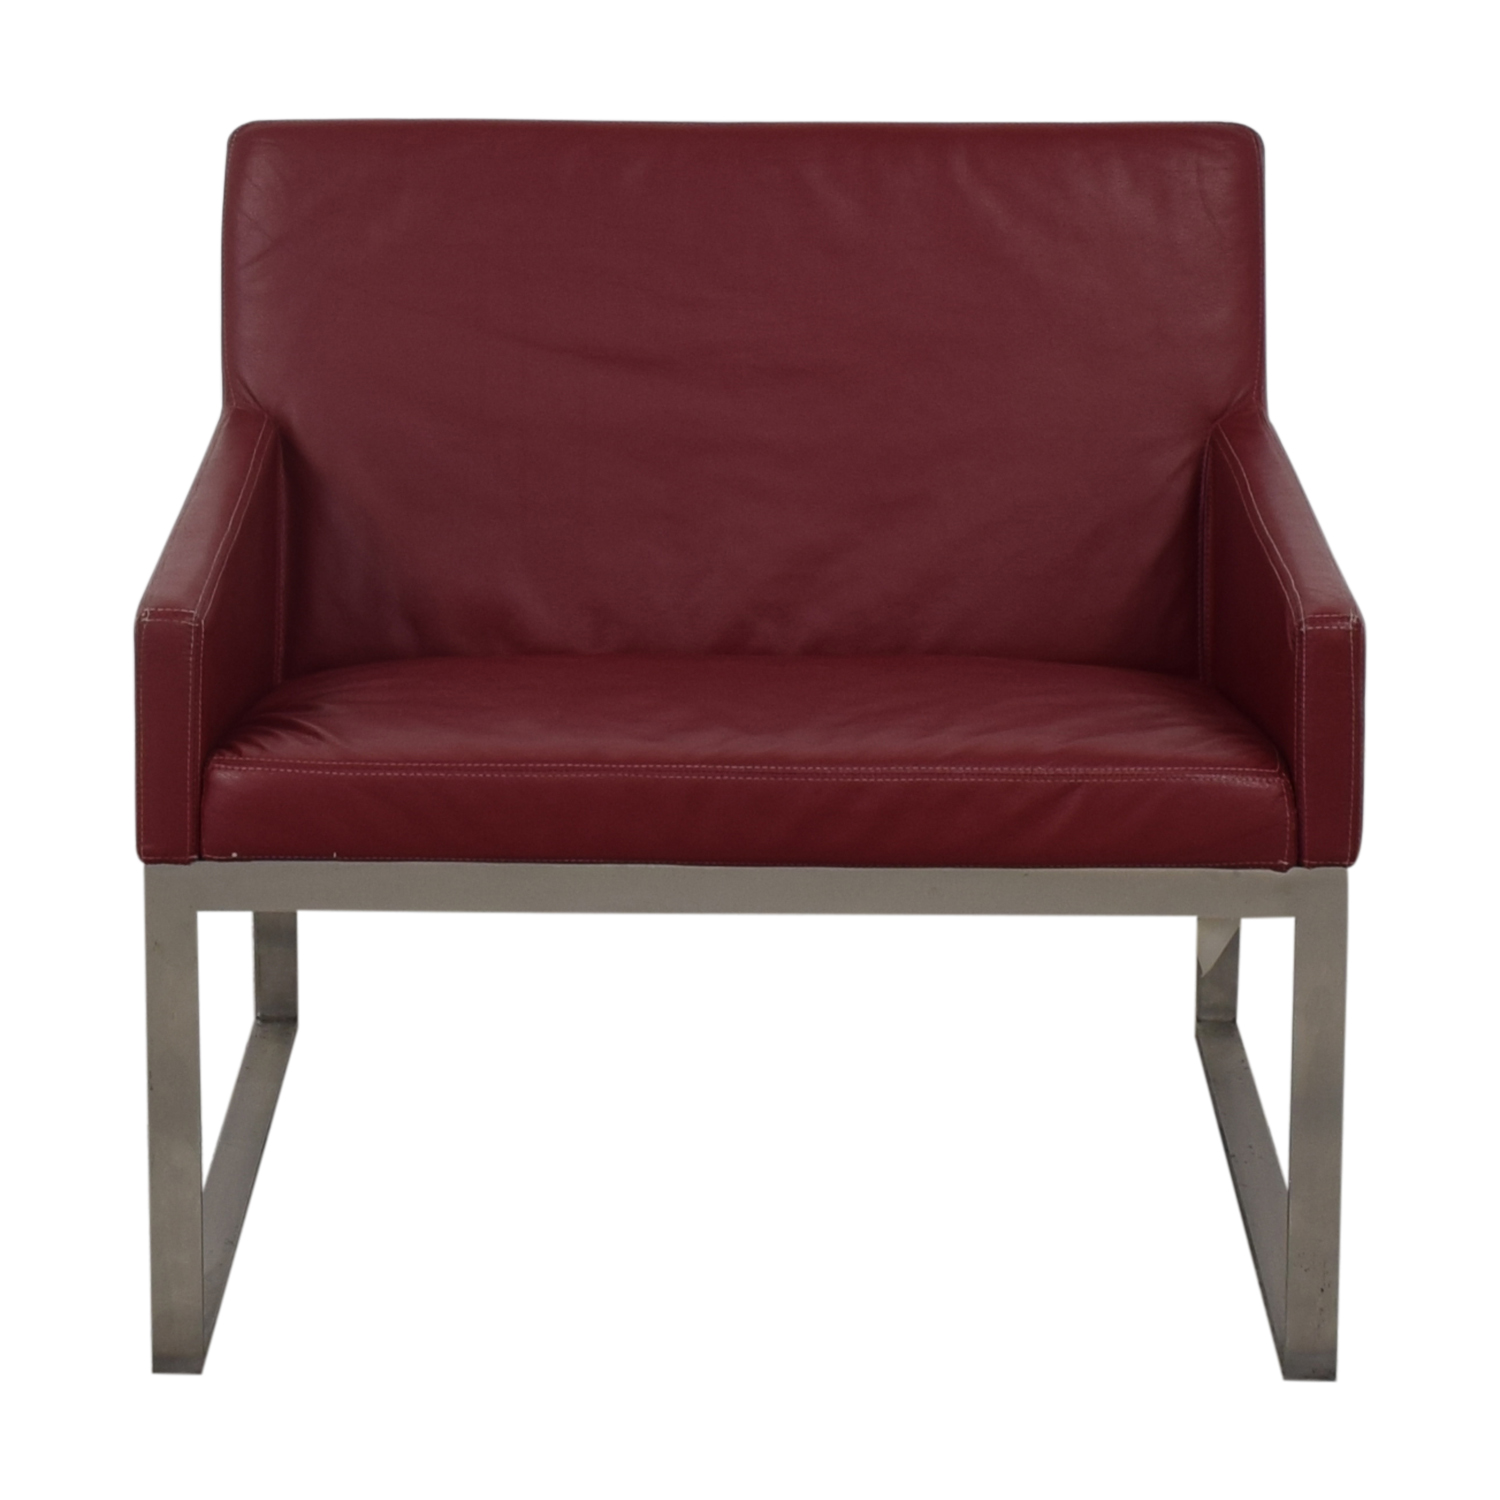 shop Bernhardt Bernhardt B.3 Lounge Chair online